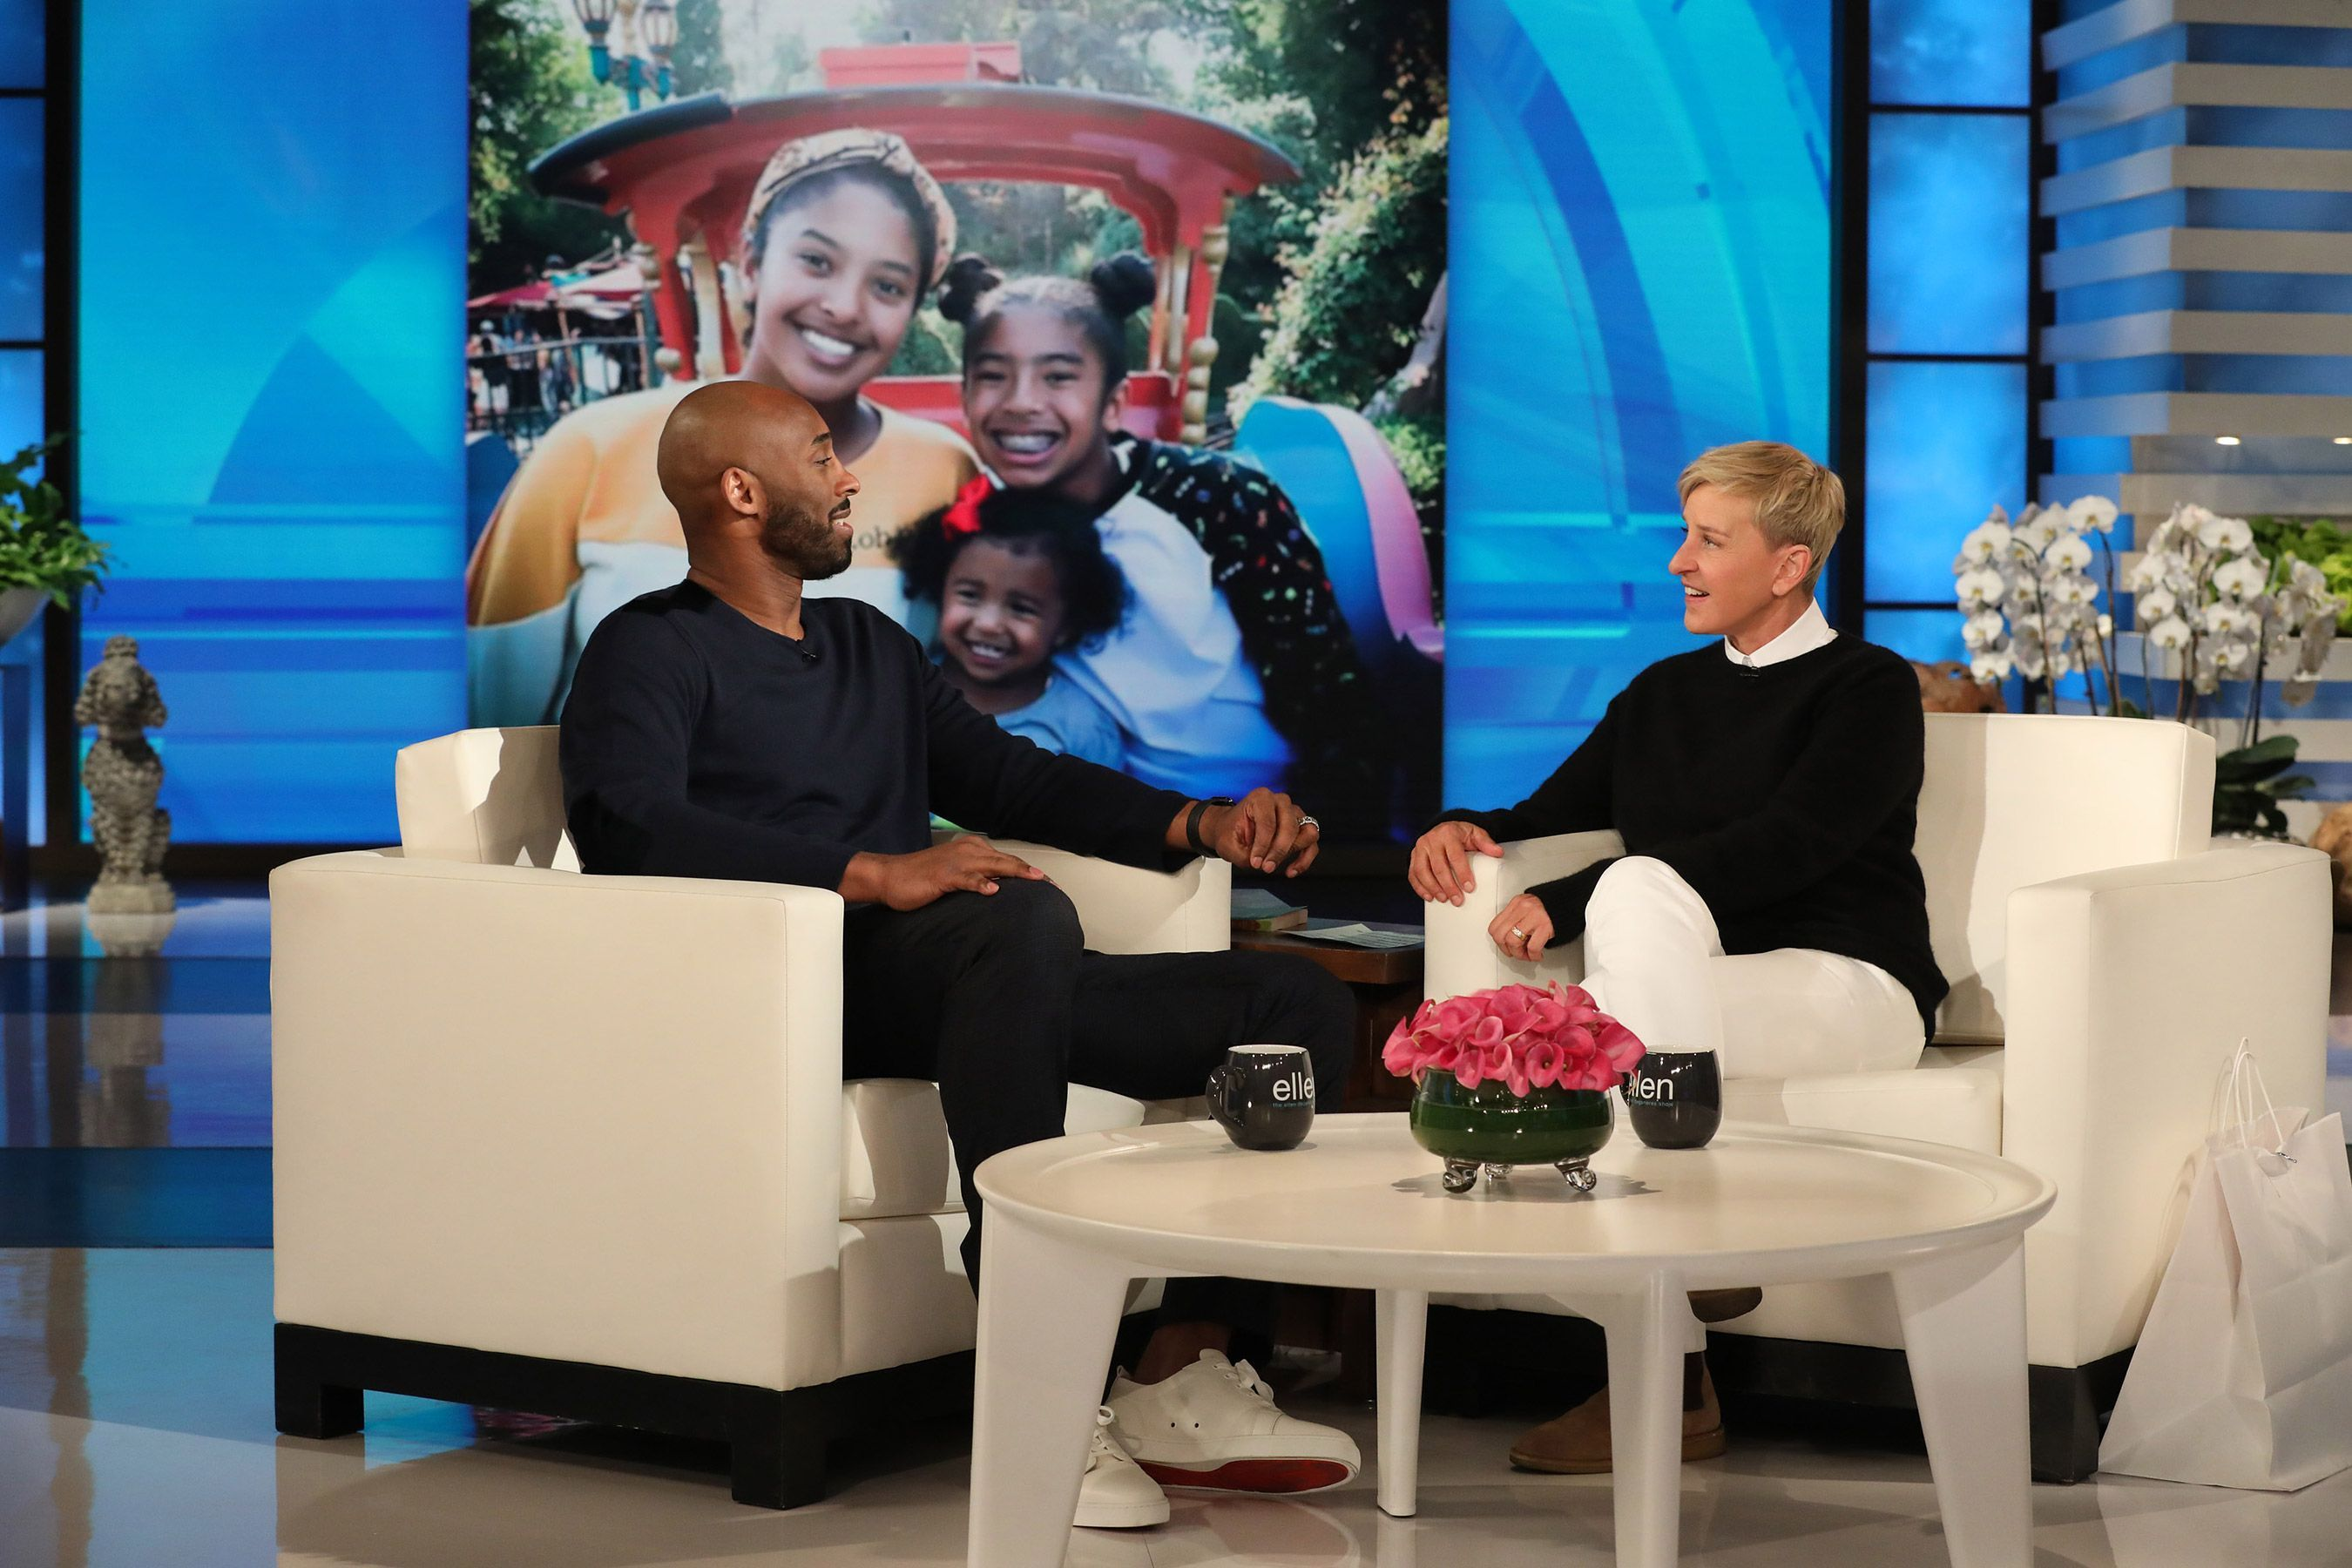 Kobe Bryant and Wife Vanessa Welcome Daughter Capri Kobe: 'Beyond Excited' -  Kobe Bryant and Wife Vanessa Welcome Daughter Capri Kobe: 'Beyond Excited'  - #attachmentParenting #Bryant #Capri #DAUGHTER #excited #Kobe #naturalParenting #Parentingcitation #Parentingdaughters #Parentingfail #Parentingfalso #Parentingpics #Parentingyungblud #Vanessa #Wife